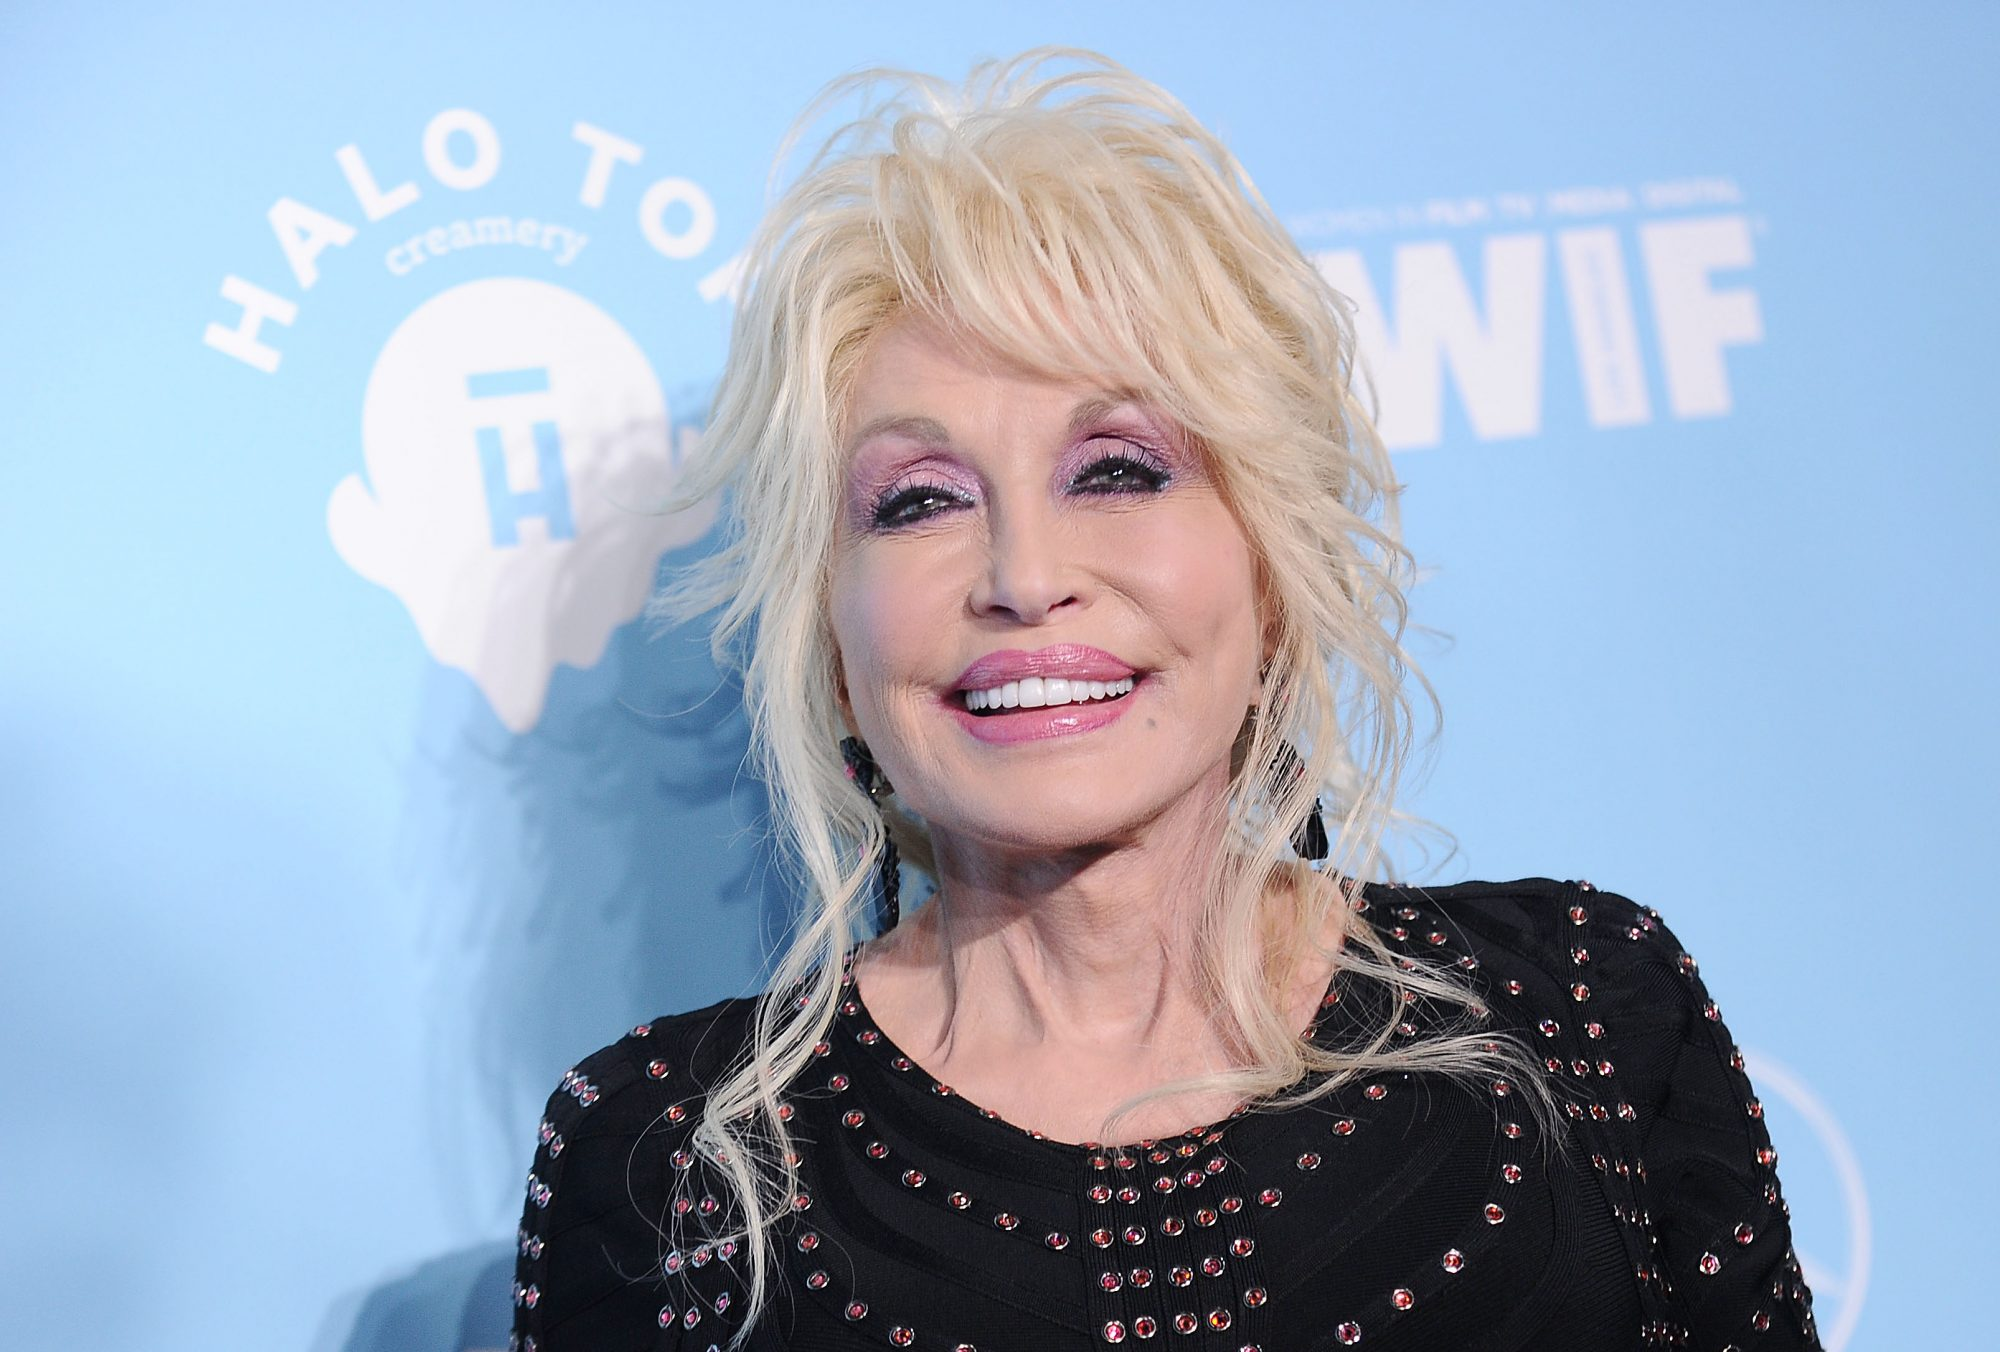 Dolly Parton On Decision To Turn Down Elvis Presley